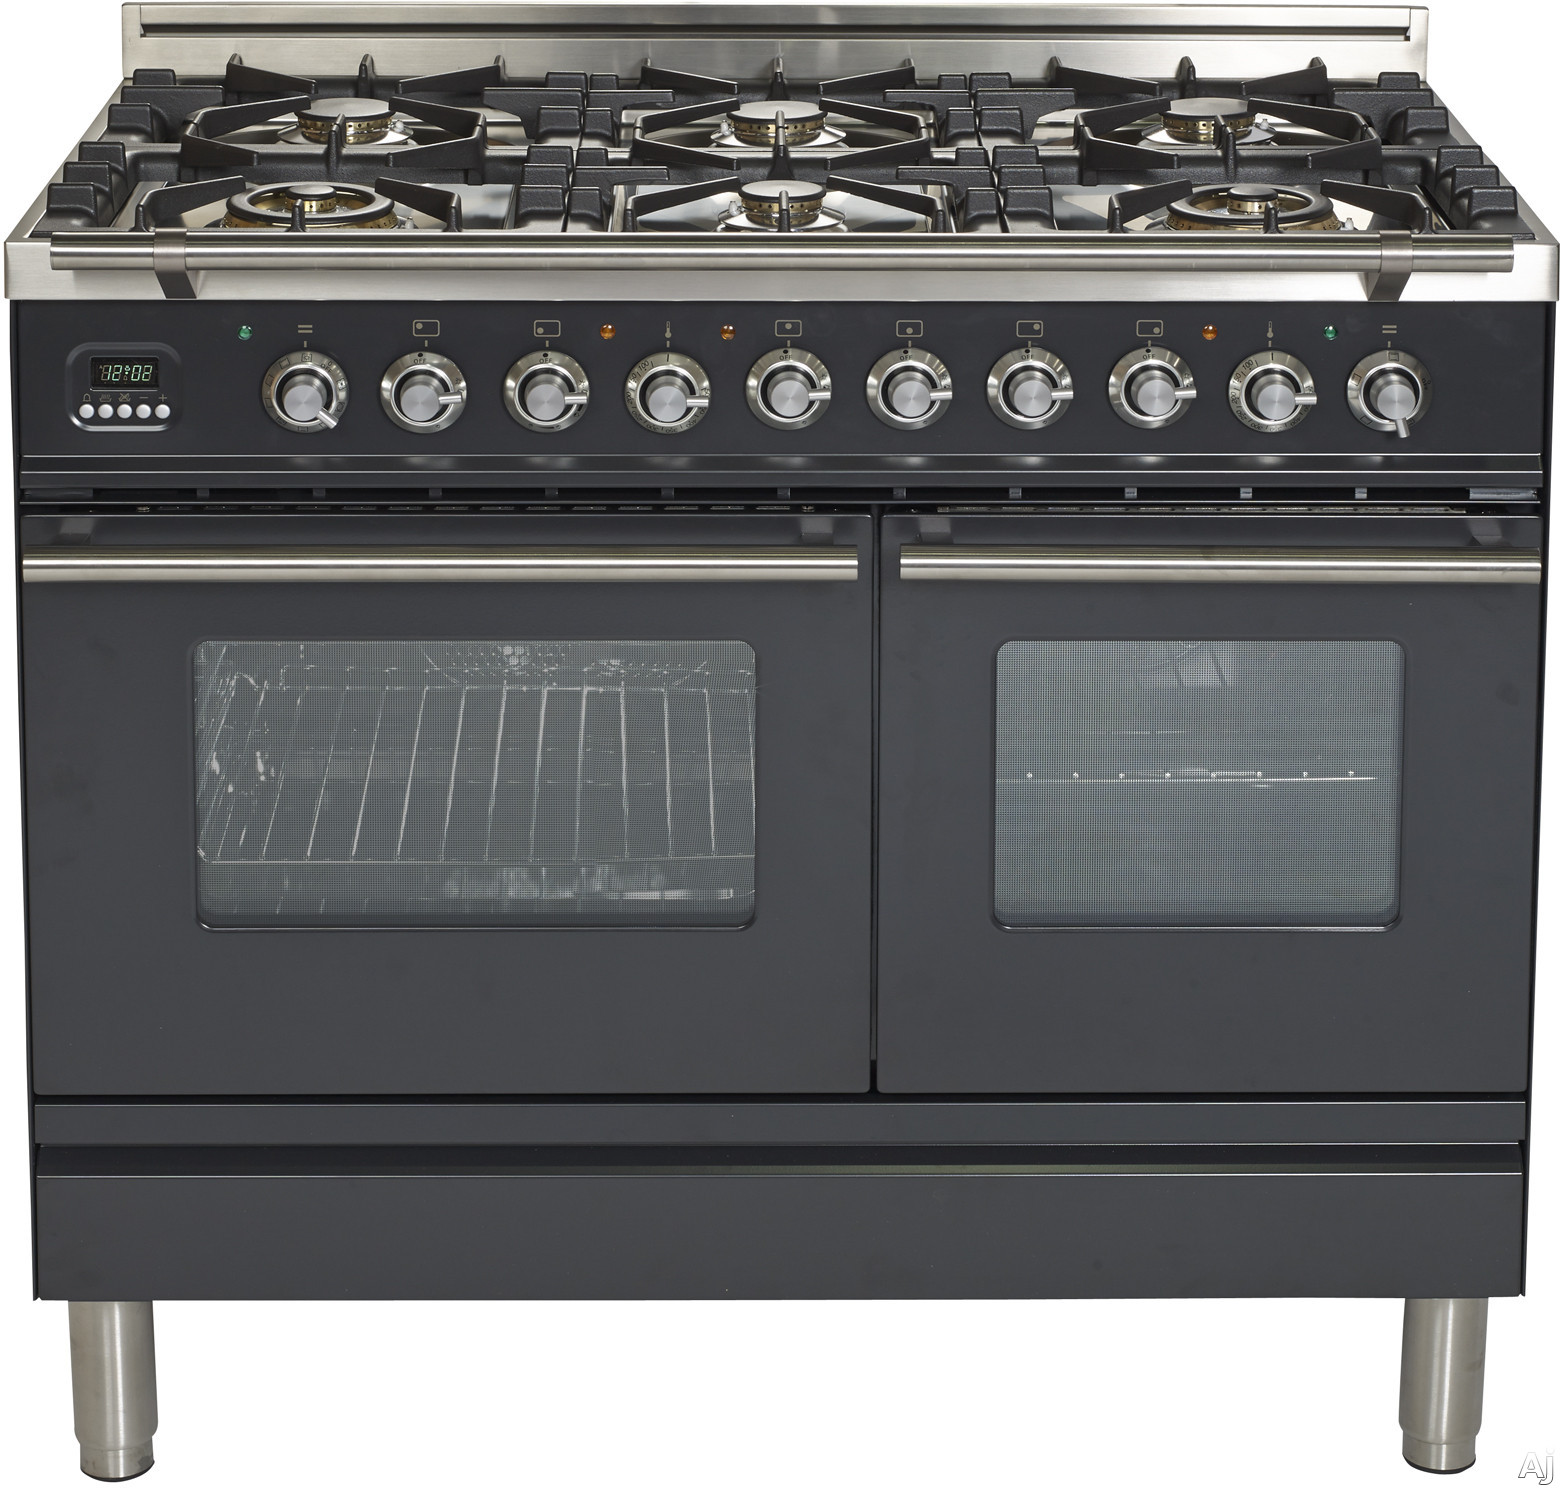 Ilve Proline Series UPDW1006DMPM 40 Inch Dual Fuel Double Oven Range With Digital Clock, Timer, Electronic Ignition, Warming Drawer, 6 Burners,Stainless Steel